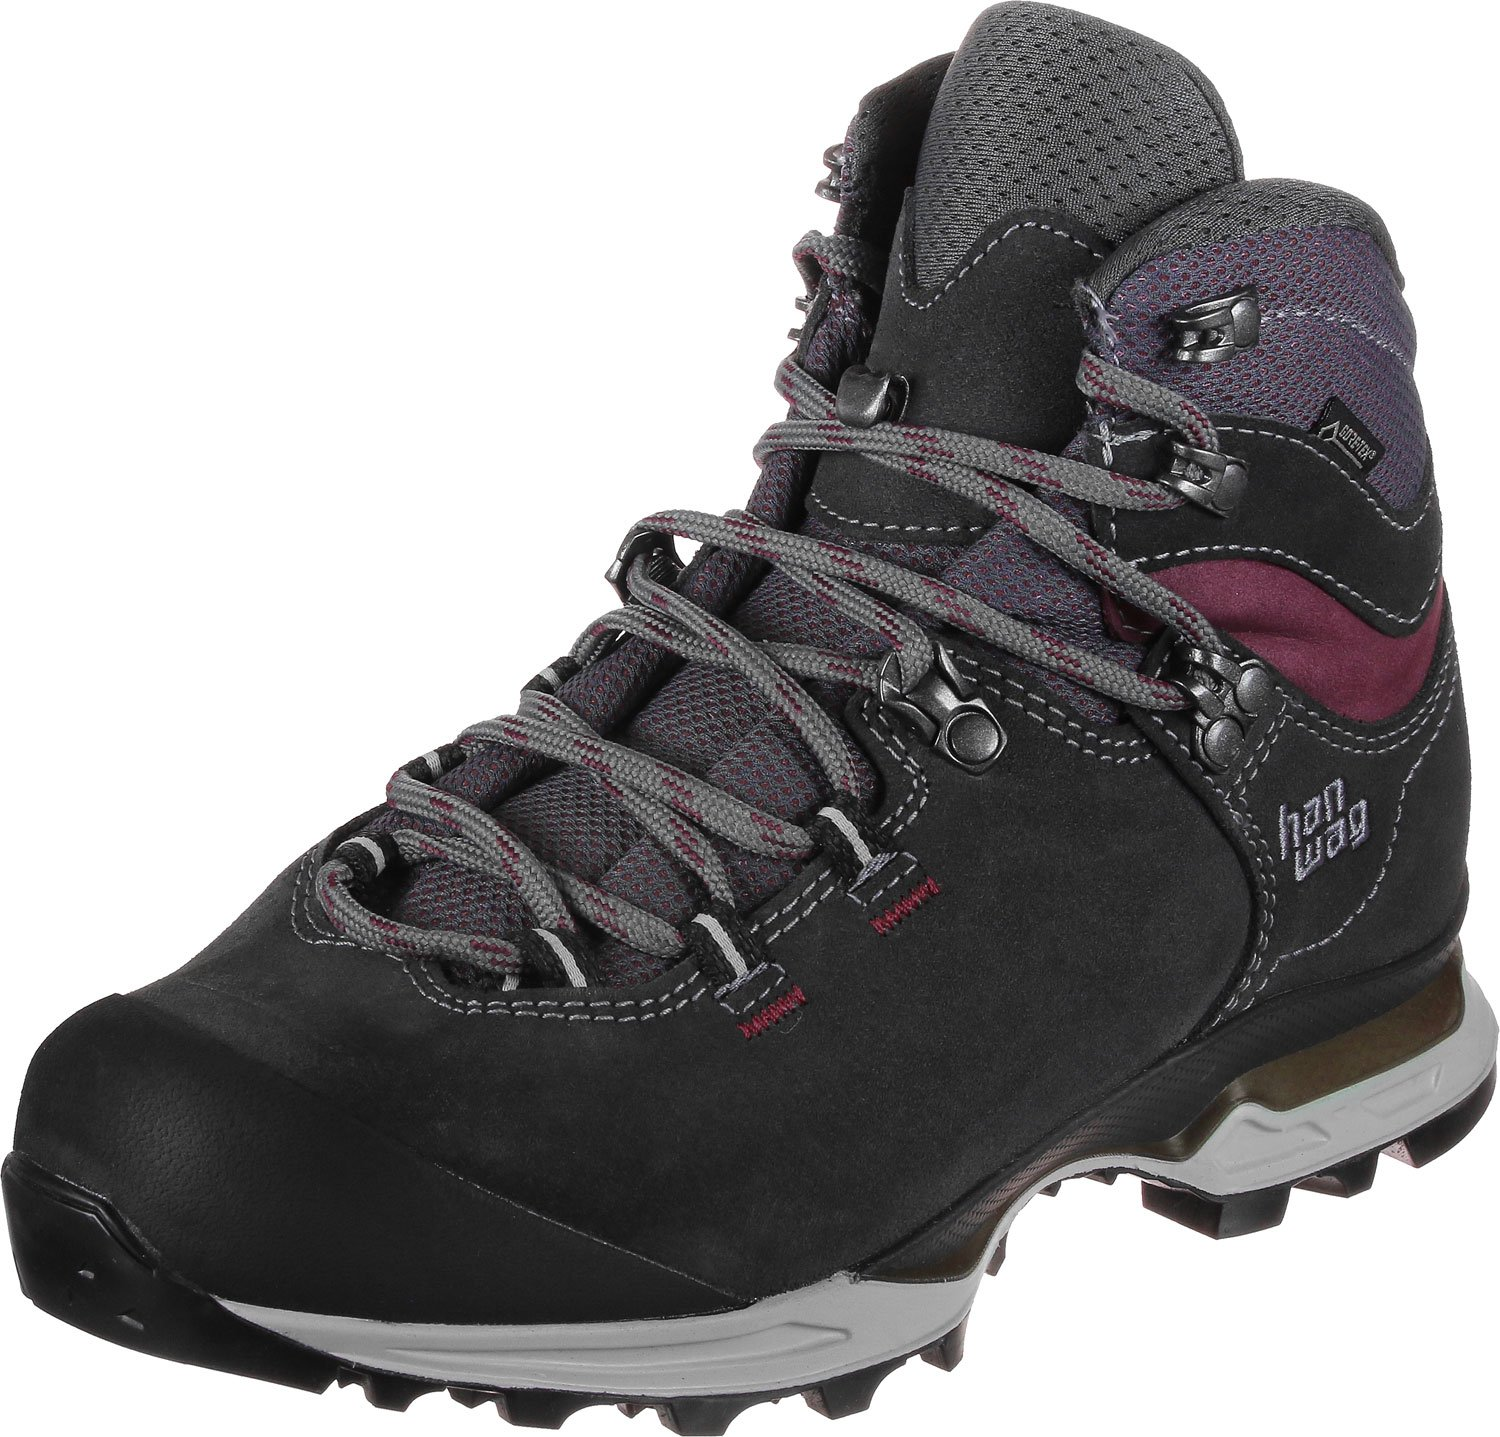 Hanwag Damen Trekkingschuhe Tatra Light Bunion Lady GTX